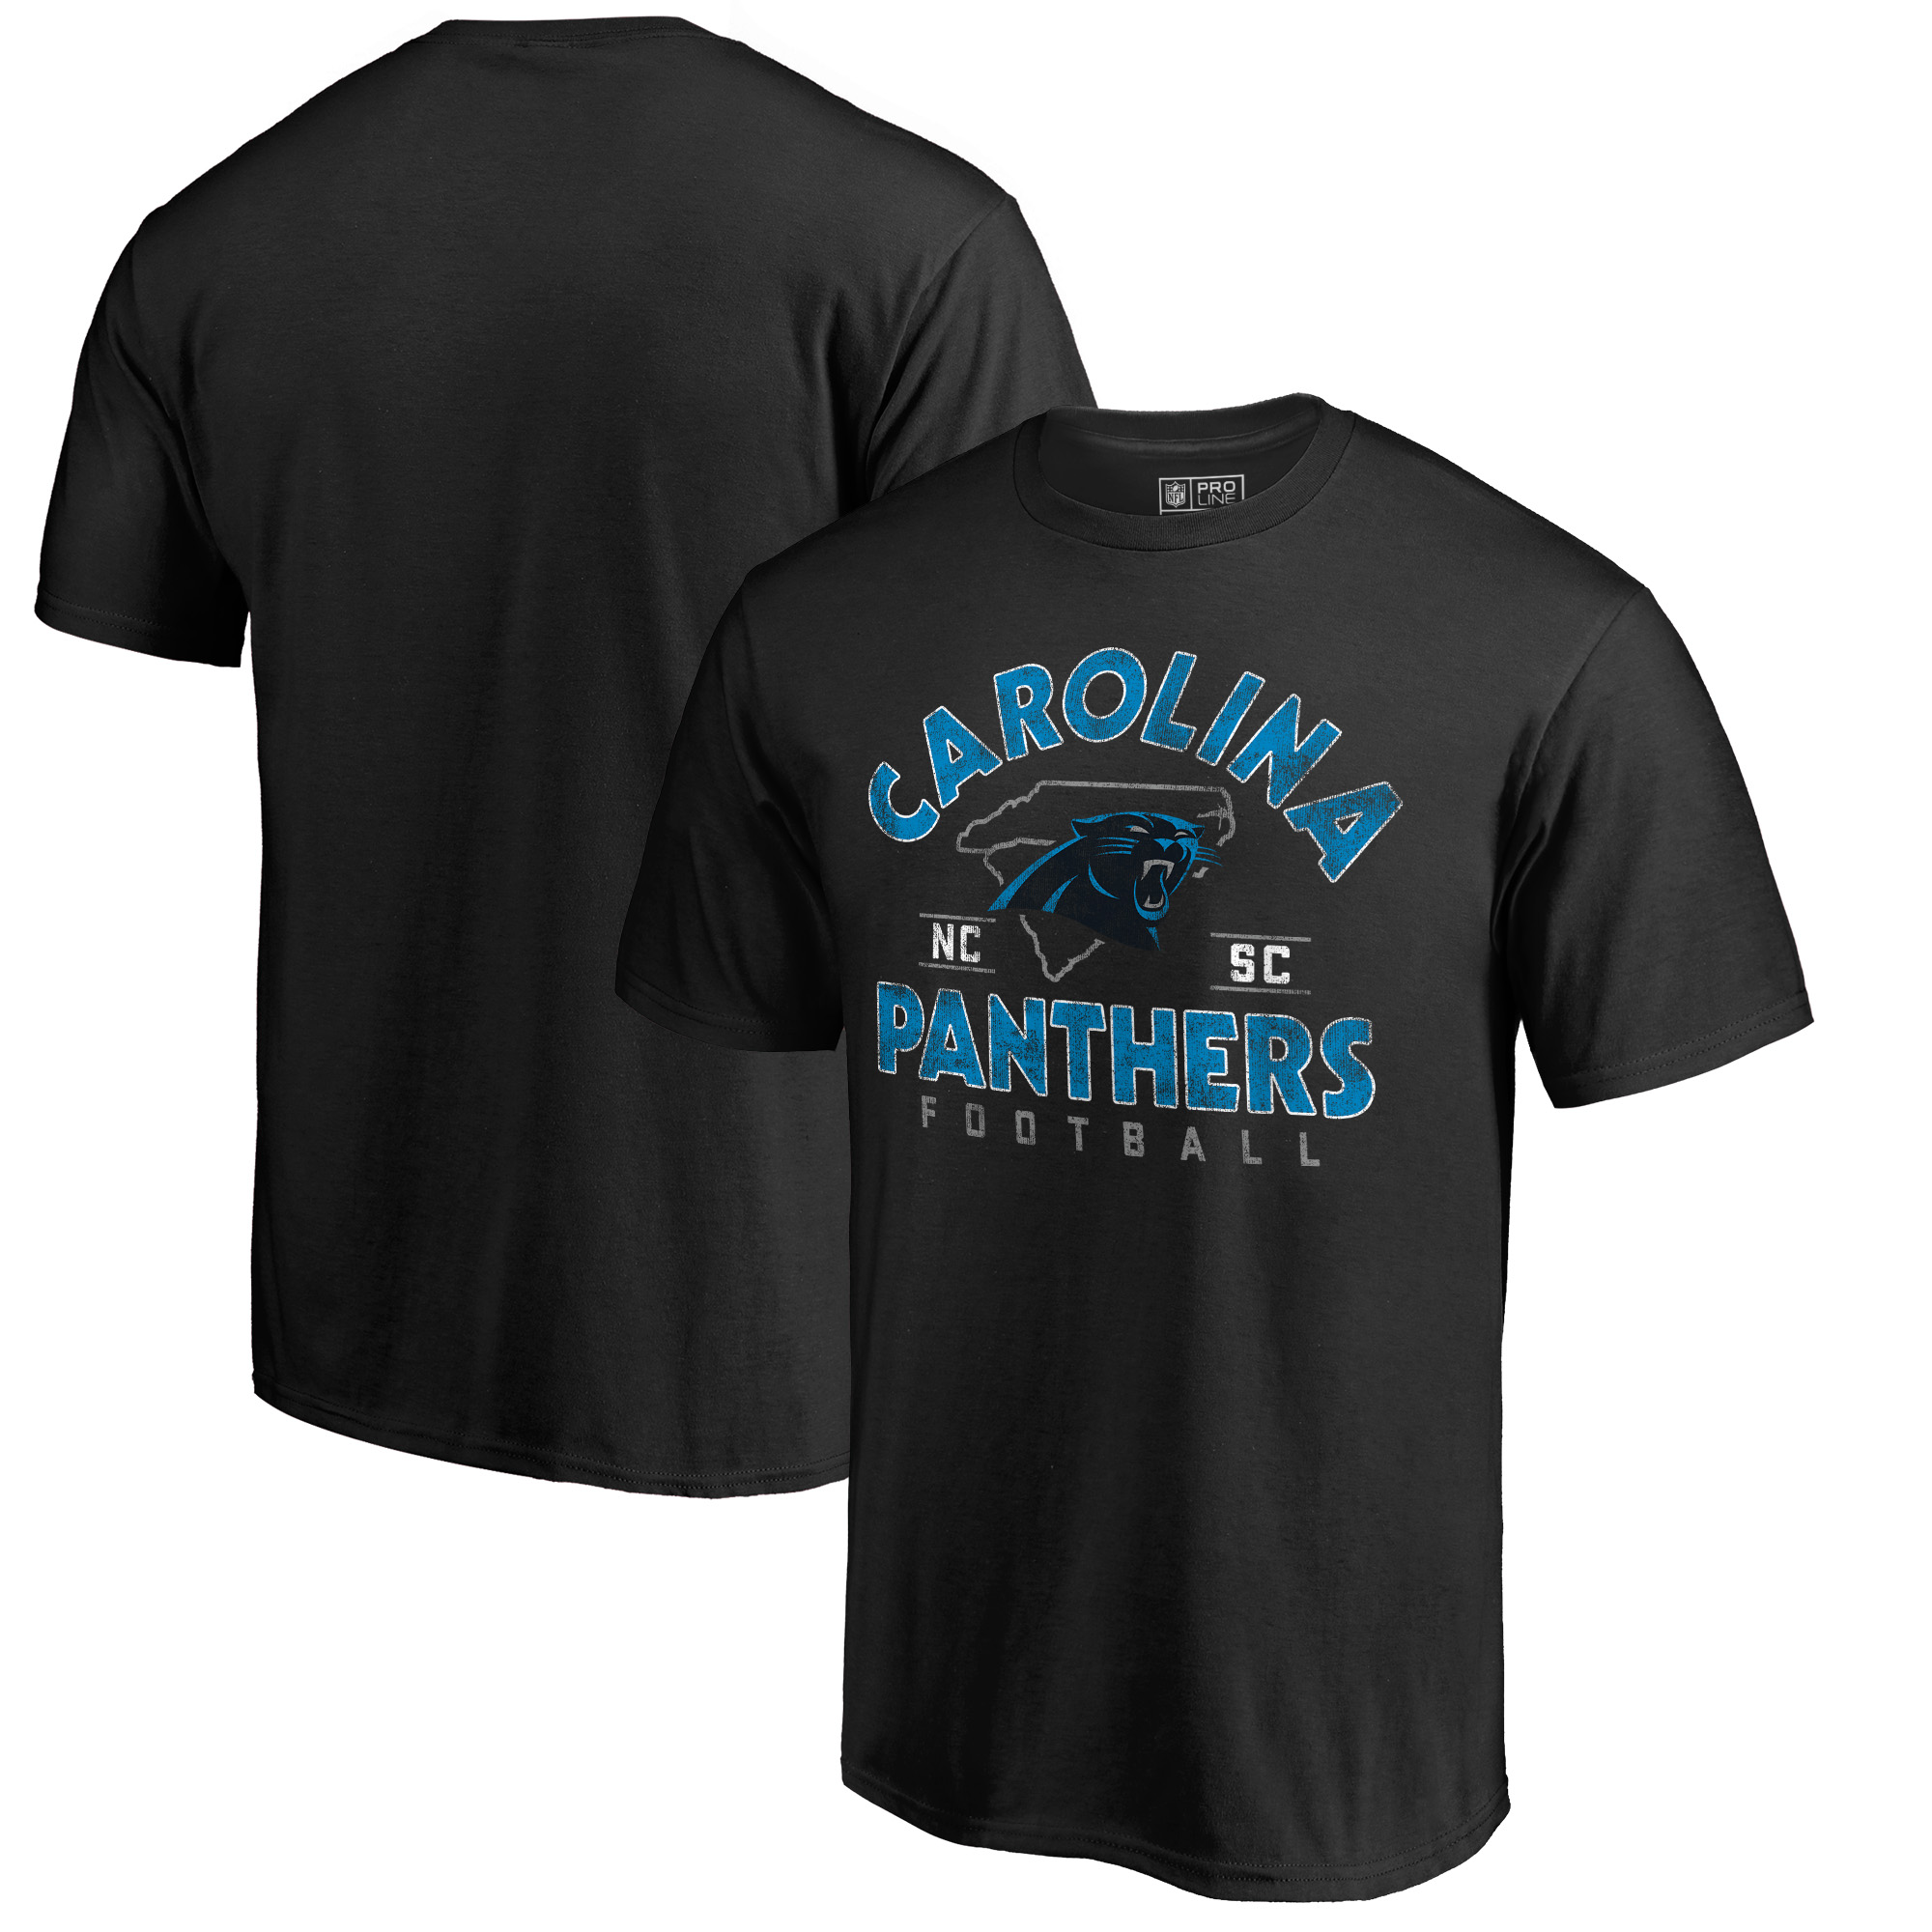 Carolina Panthers NFL Pro Line by Fanatics Branded Hometown Collection T-Shirt - Black